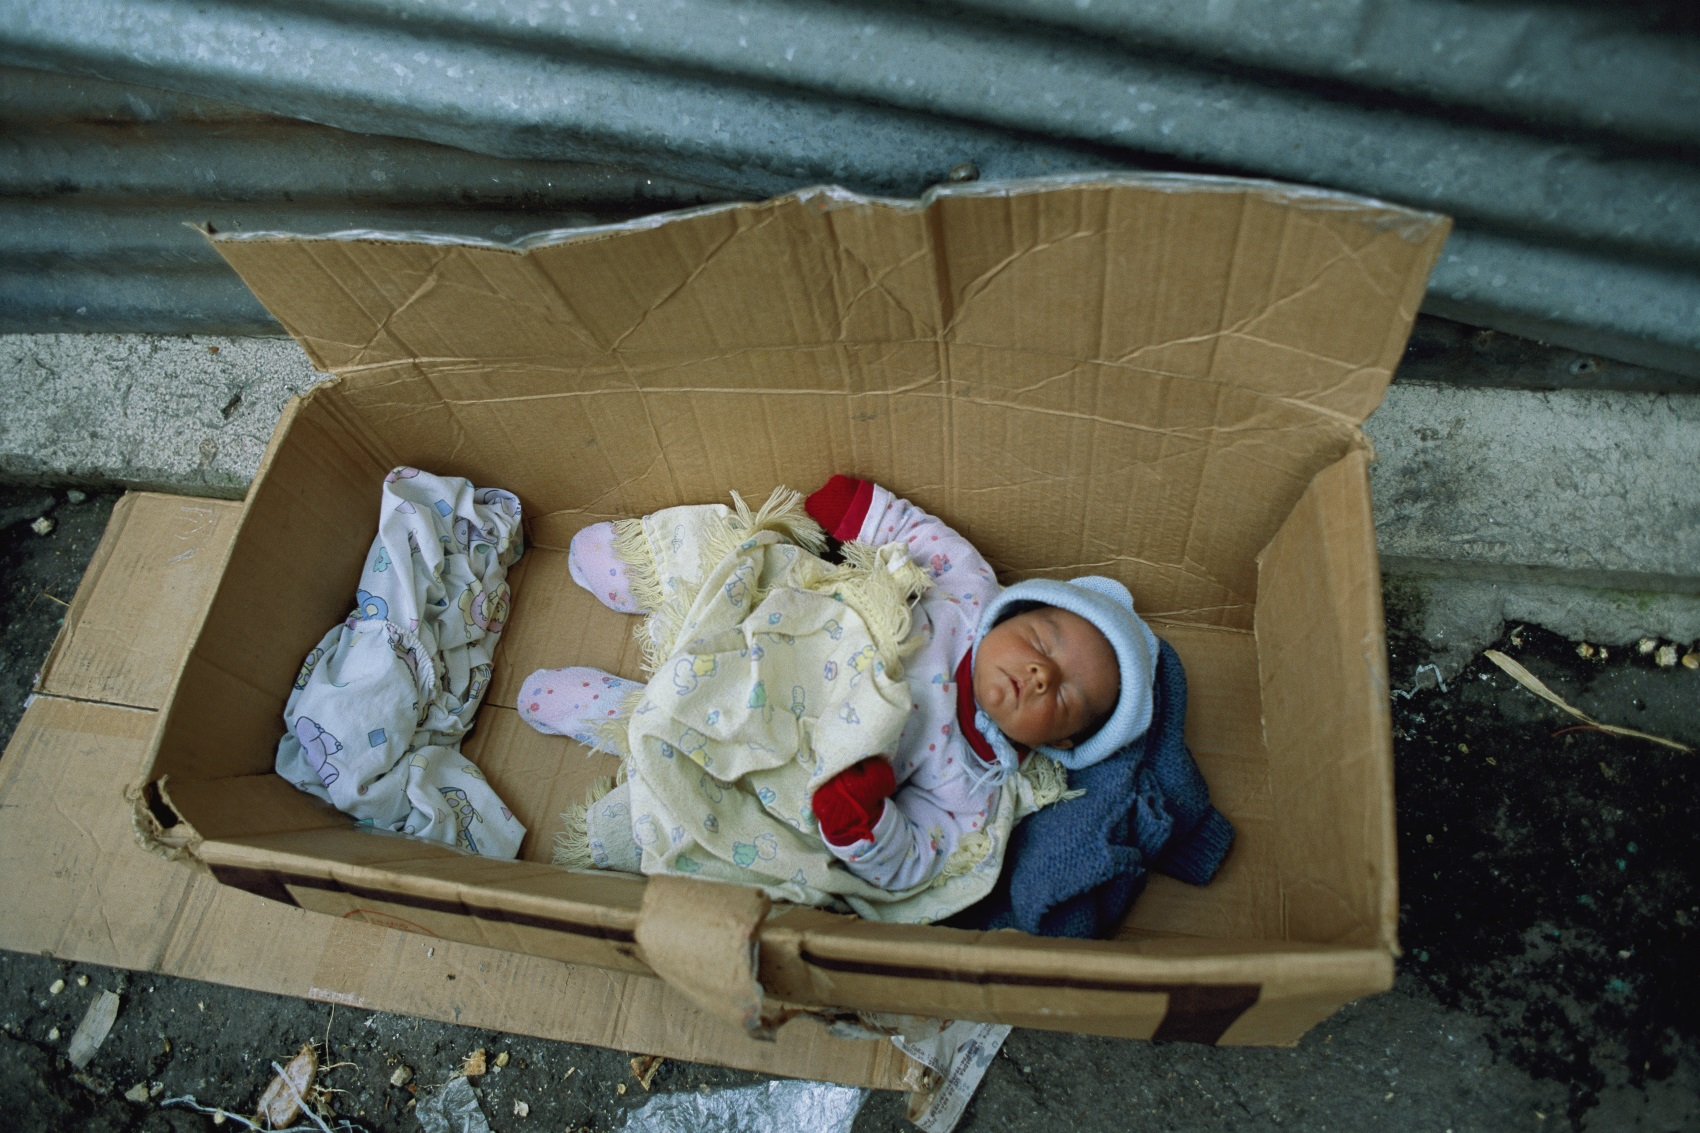 A baby sleeps inside a cardboard box that serves as a cradle.